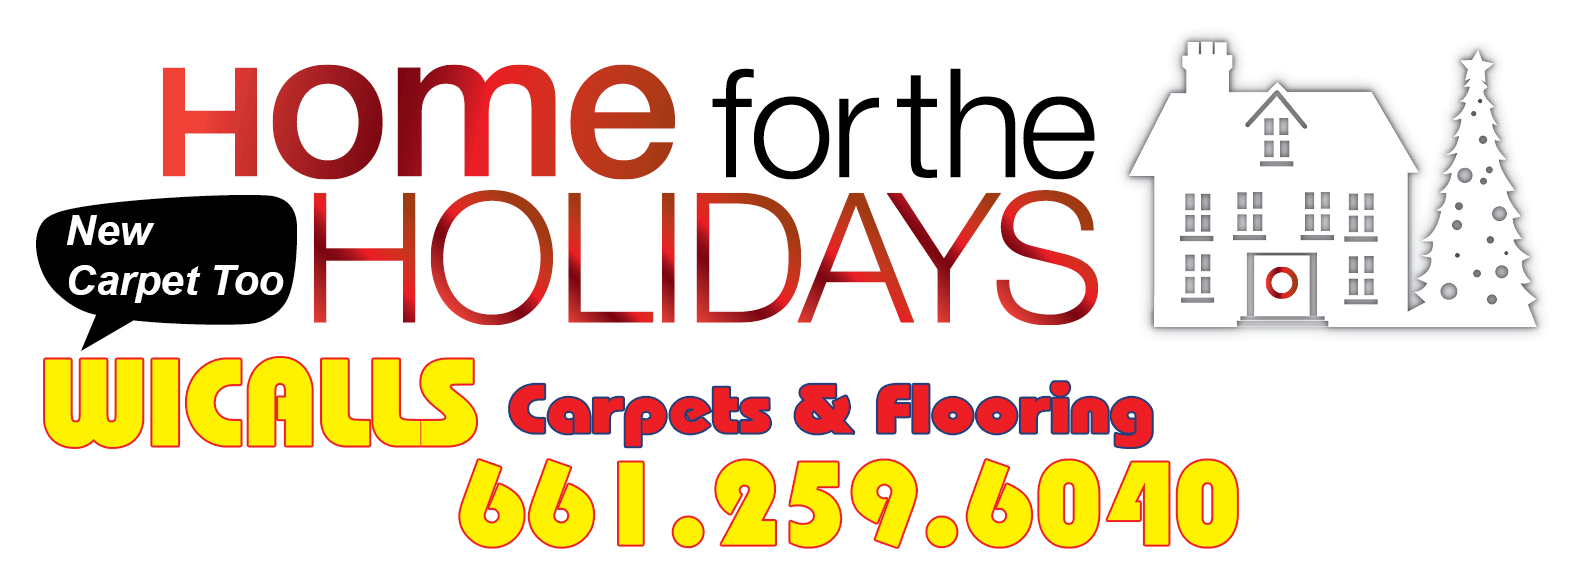 Wicall's Carpets send Best Wishes to our Customers for the Holidays